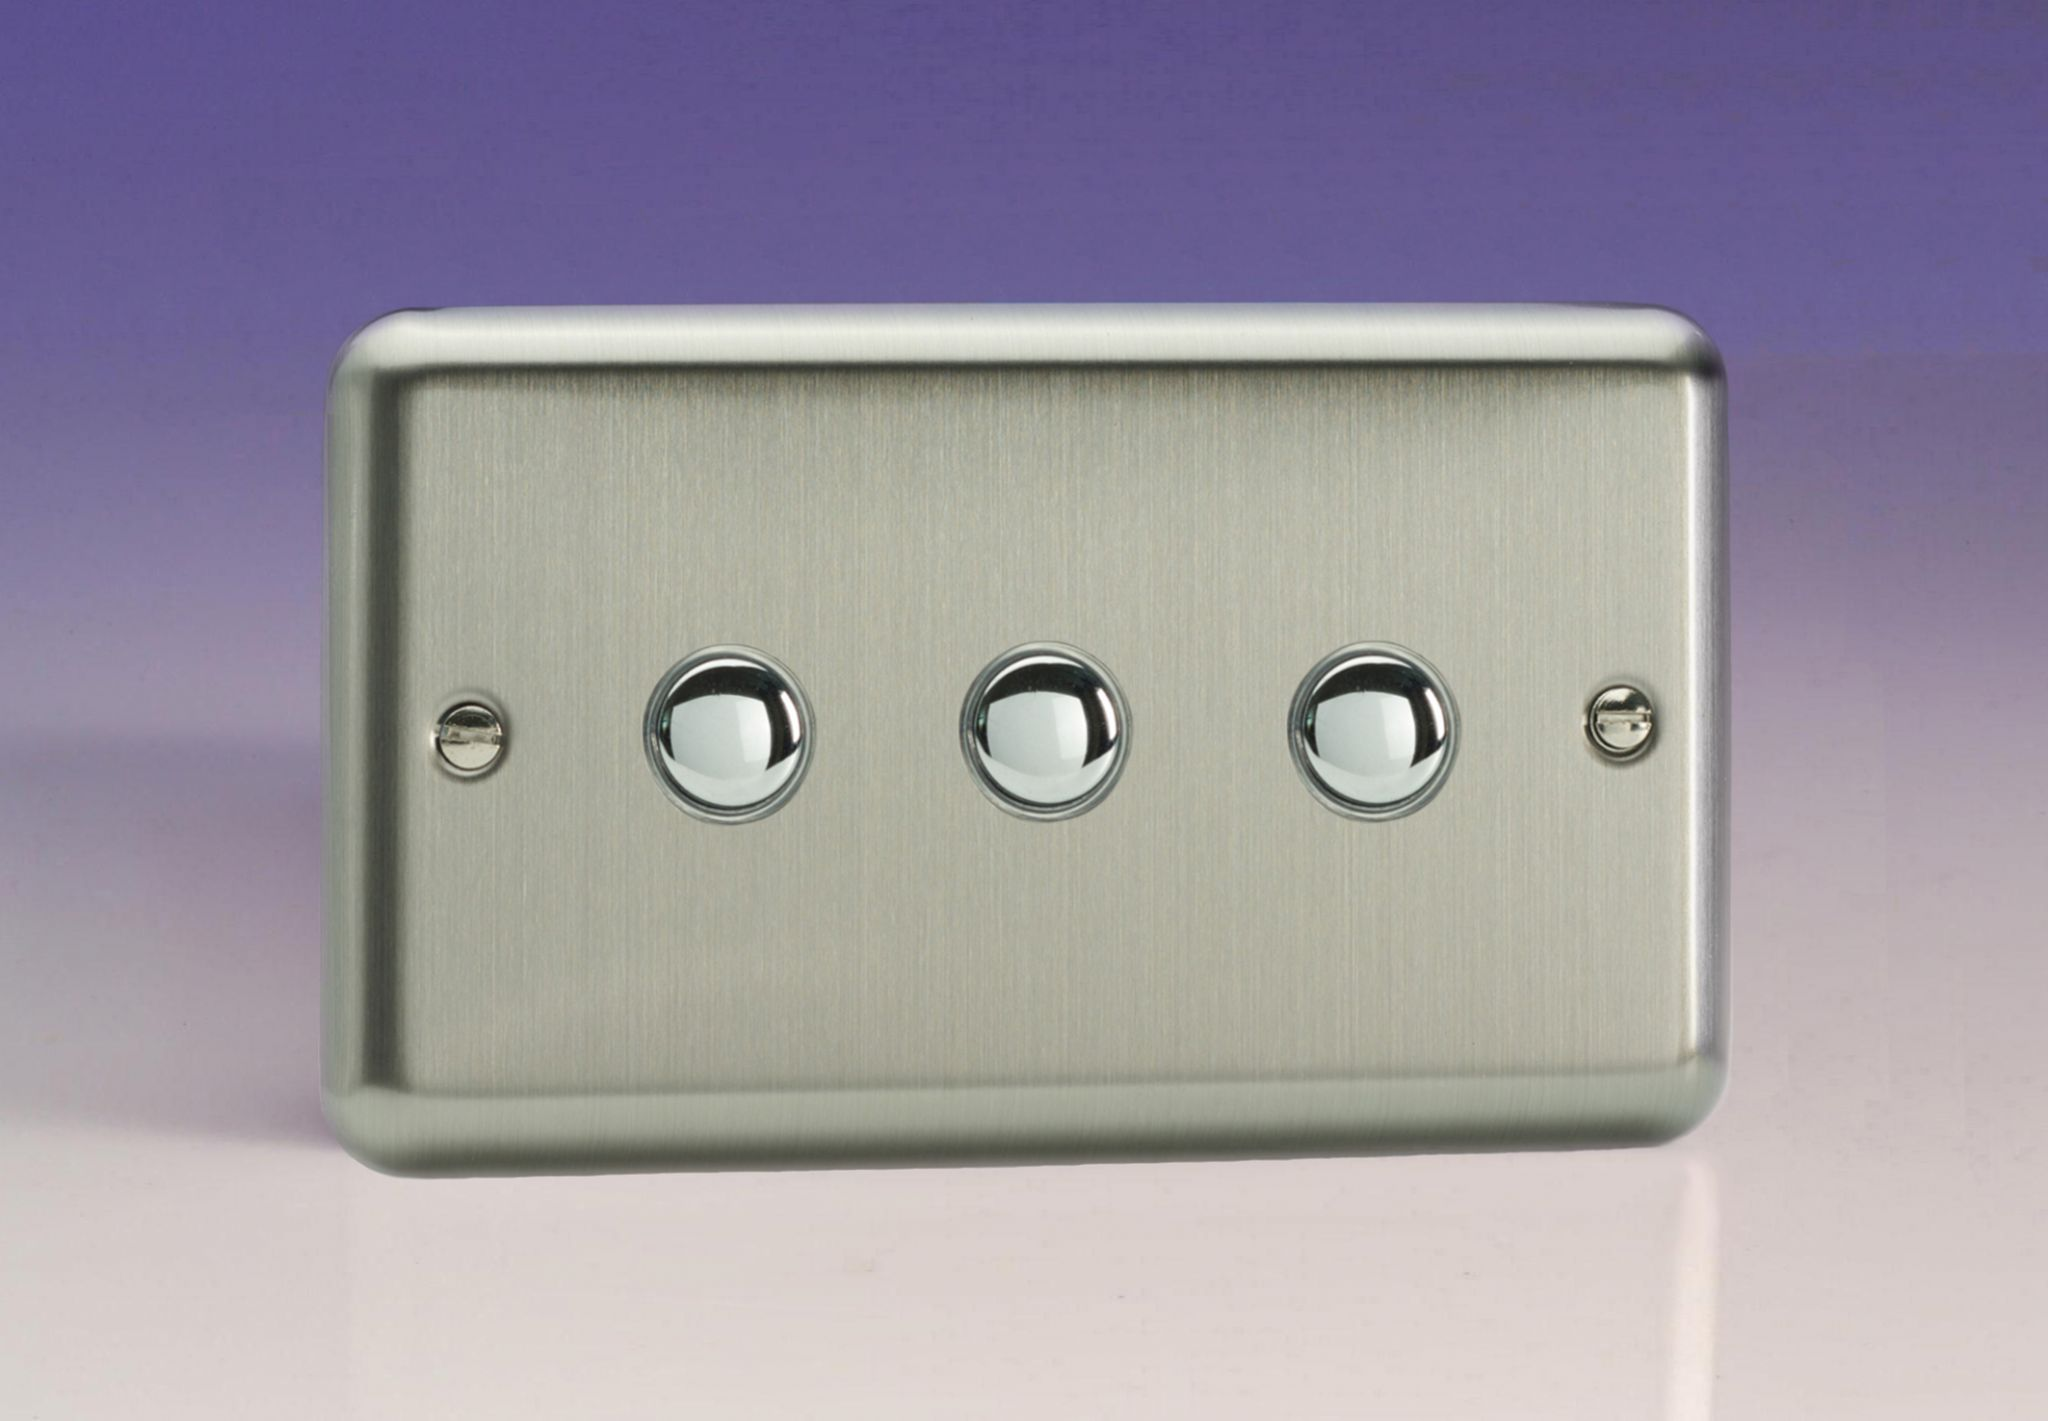 Varilight 3-Gang 6A 1-Way Push-to-Make Momentary Switch in Standard ...